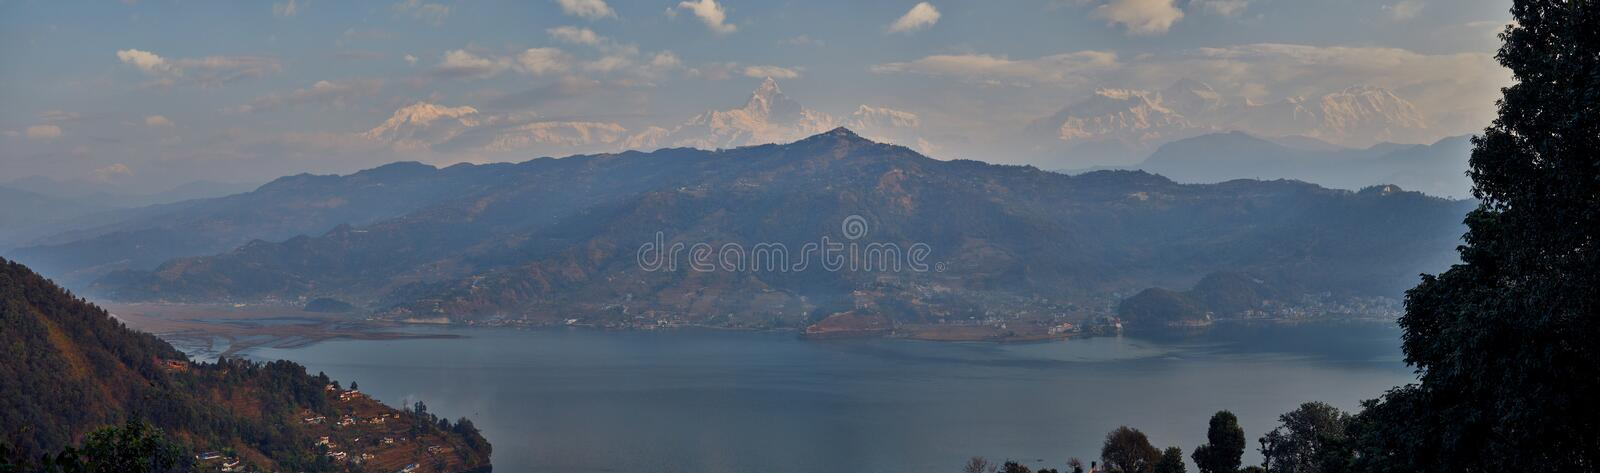 Morning view of Pokhara and Phewa lake with Himalaya mountains at the background from World Peace Pagoda in Pokhara stock photo